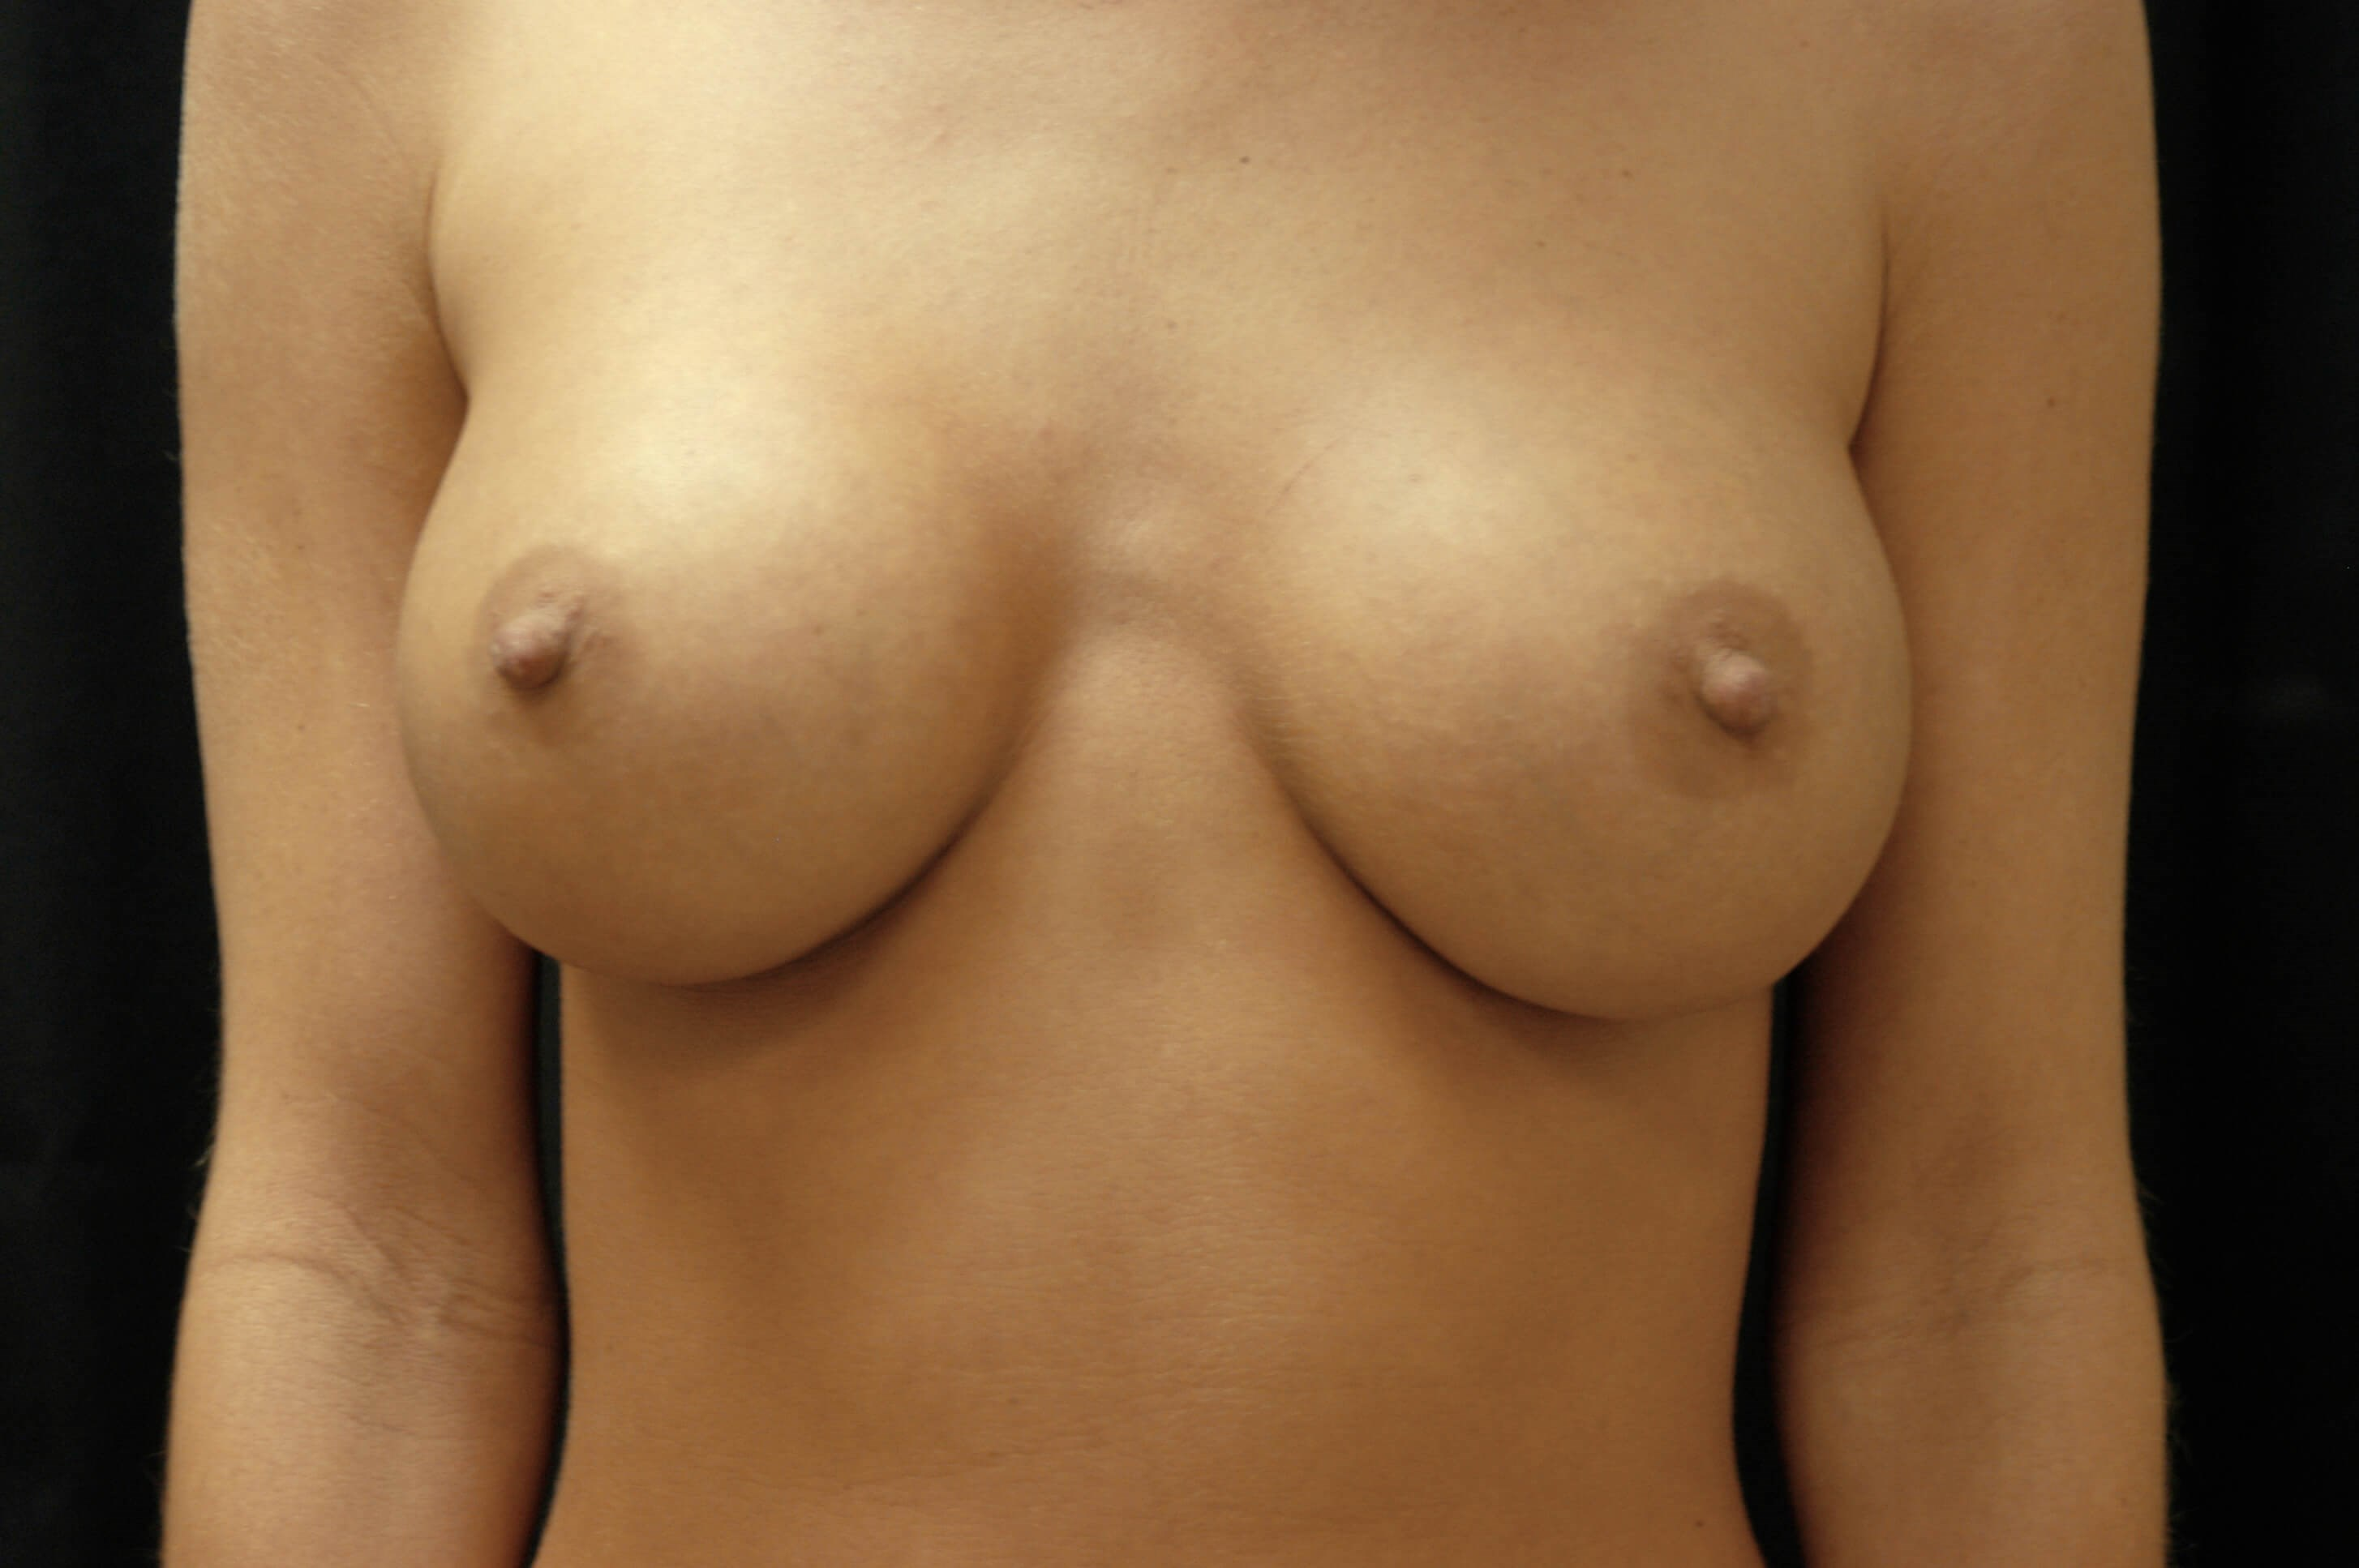 DALLAS WOMAN HAS BREAST IMPLANT REPLACEMENT SURGERY